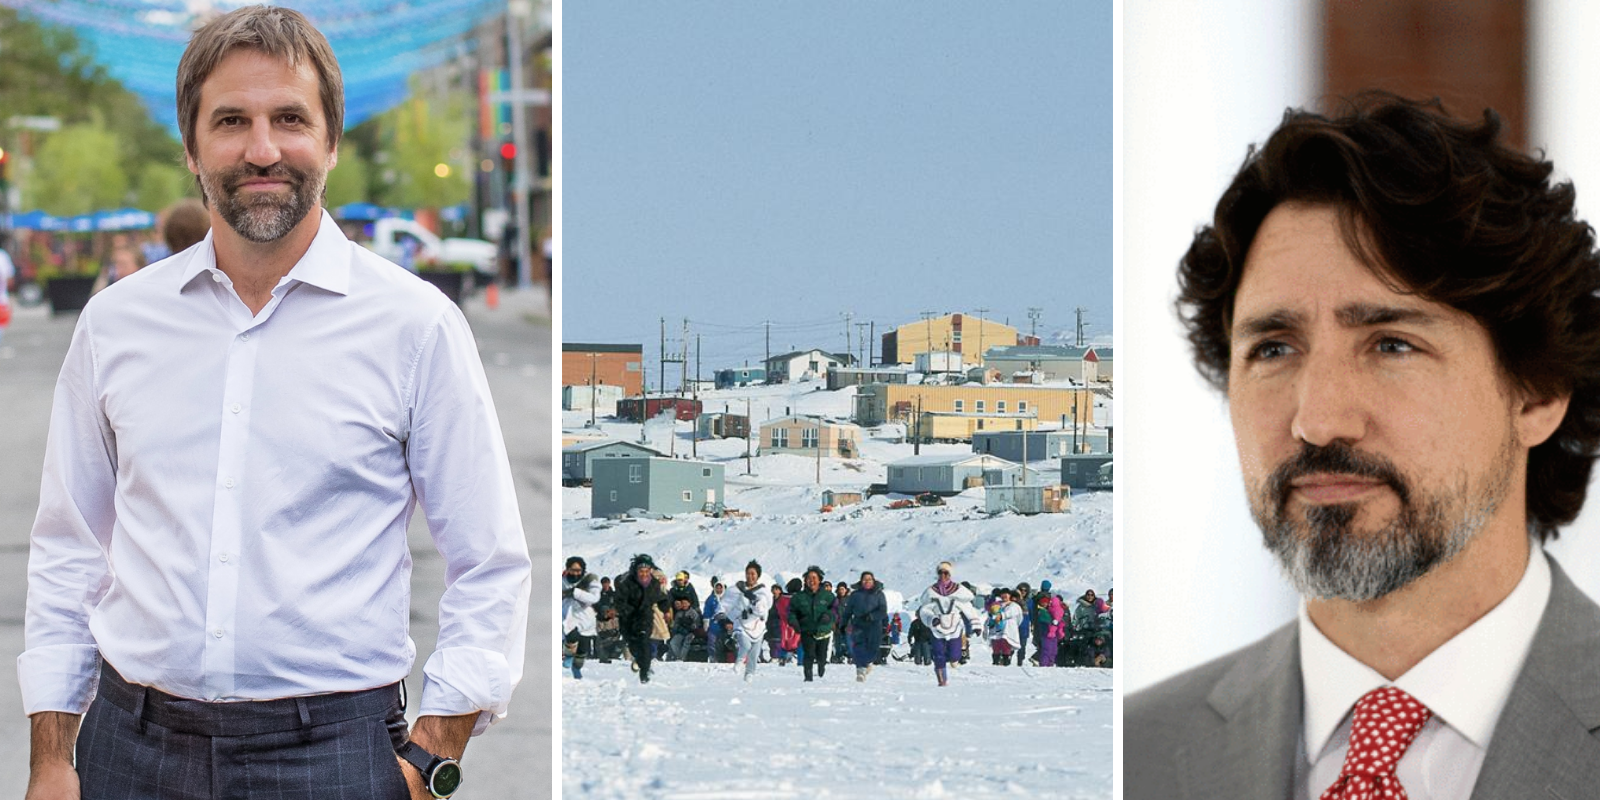 Trudeau government made up historical 'fact' that black people had been in Nunavut for 400 years